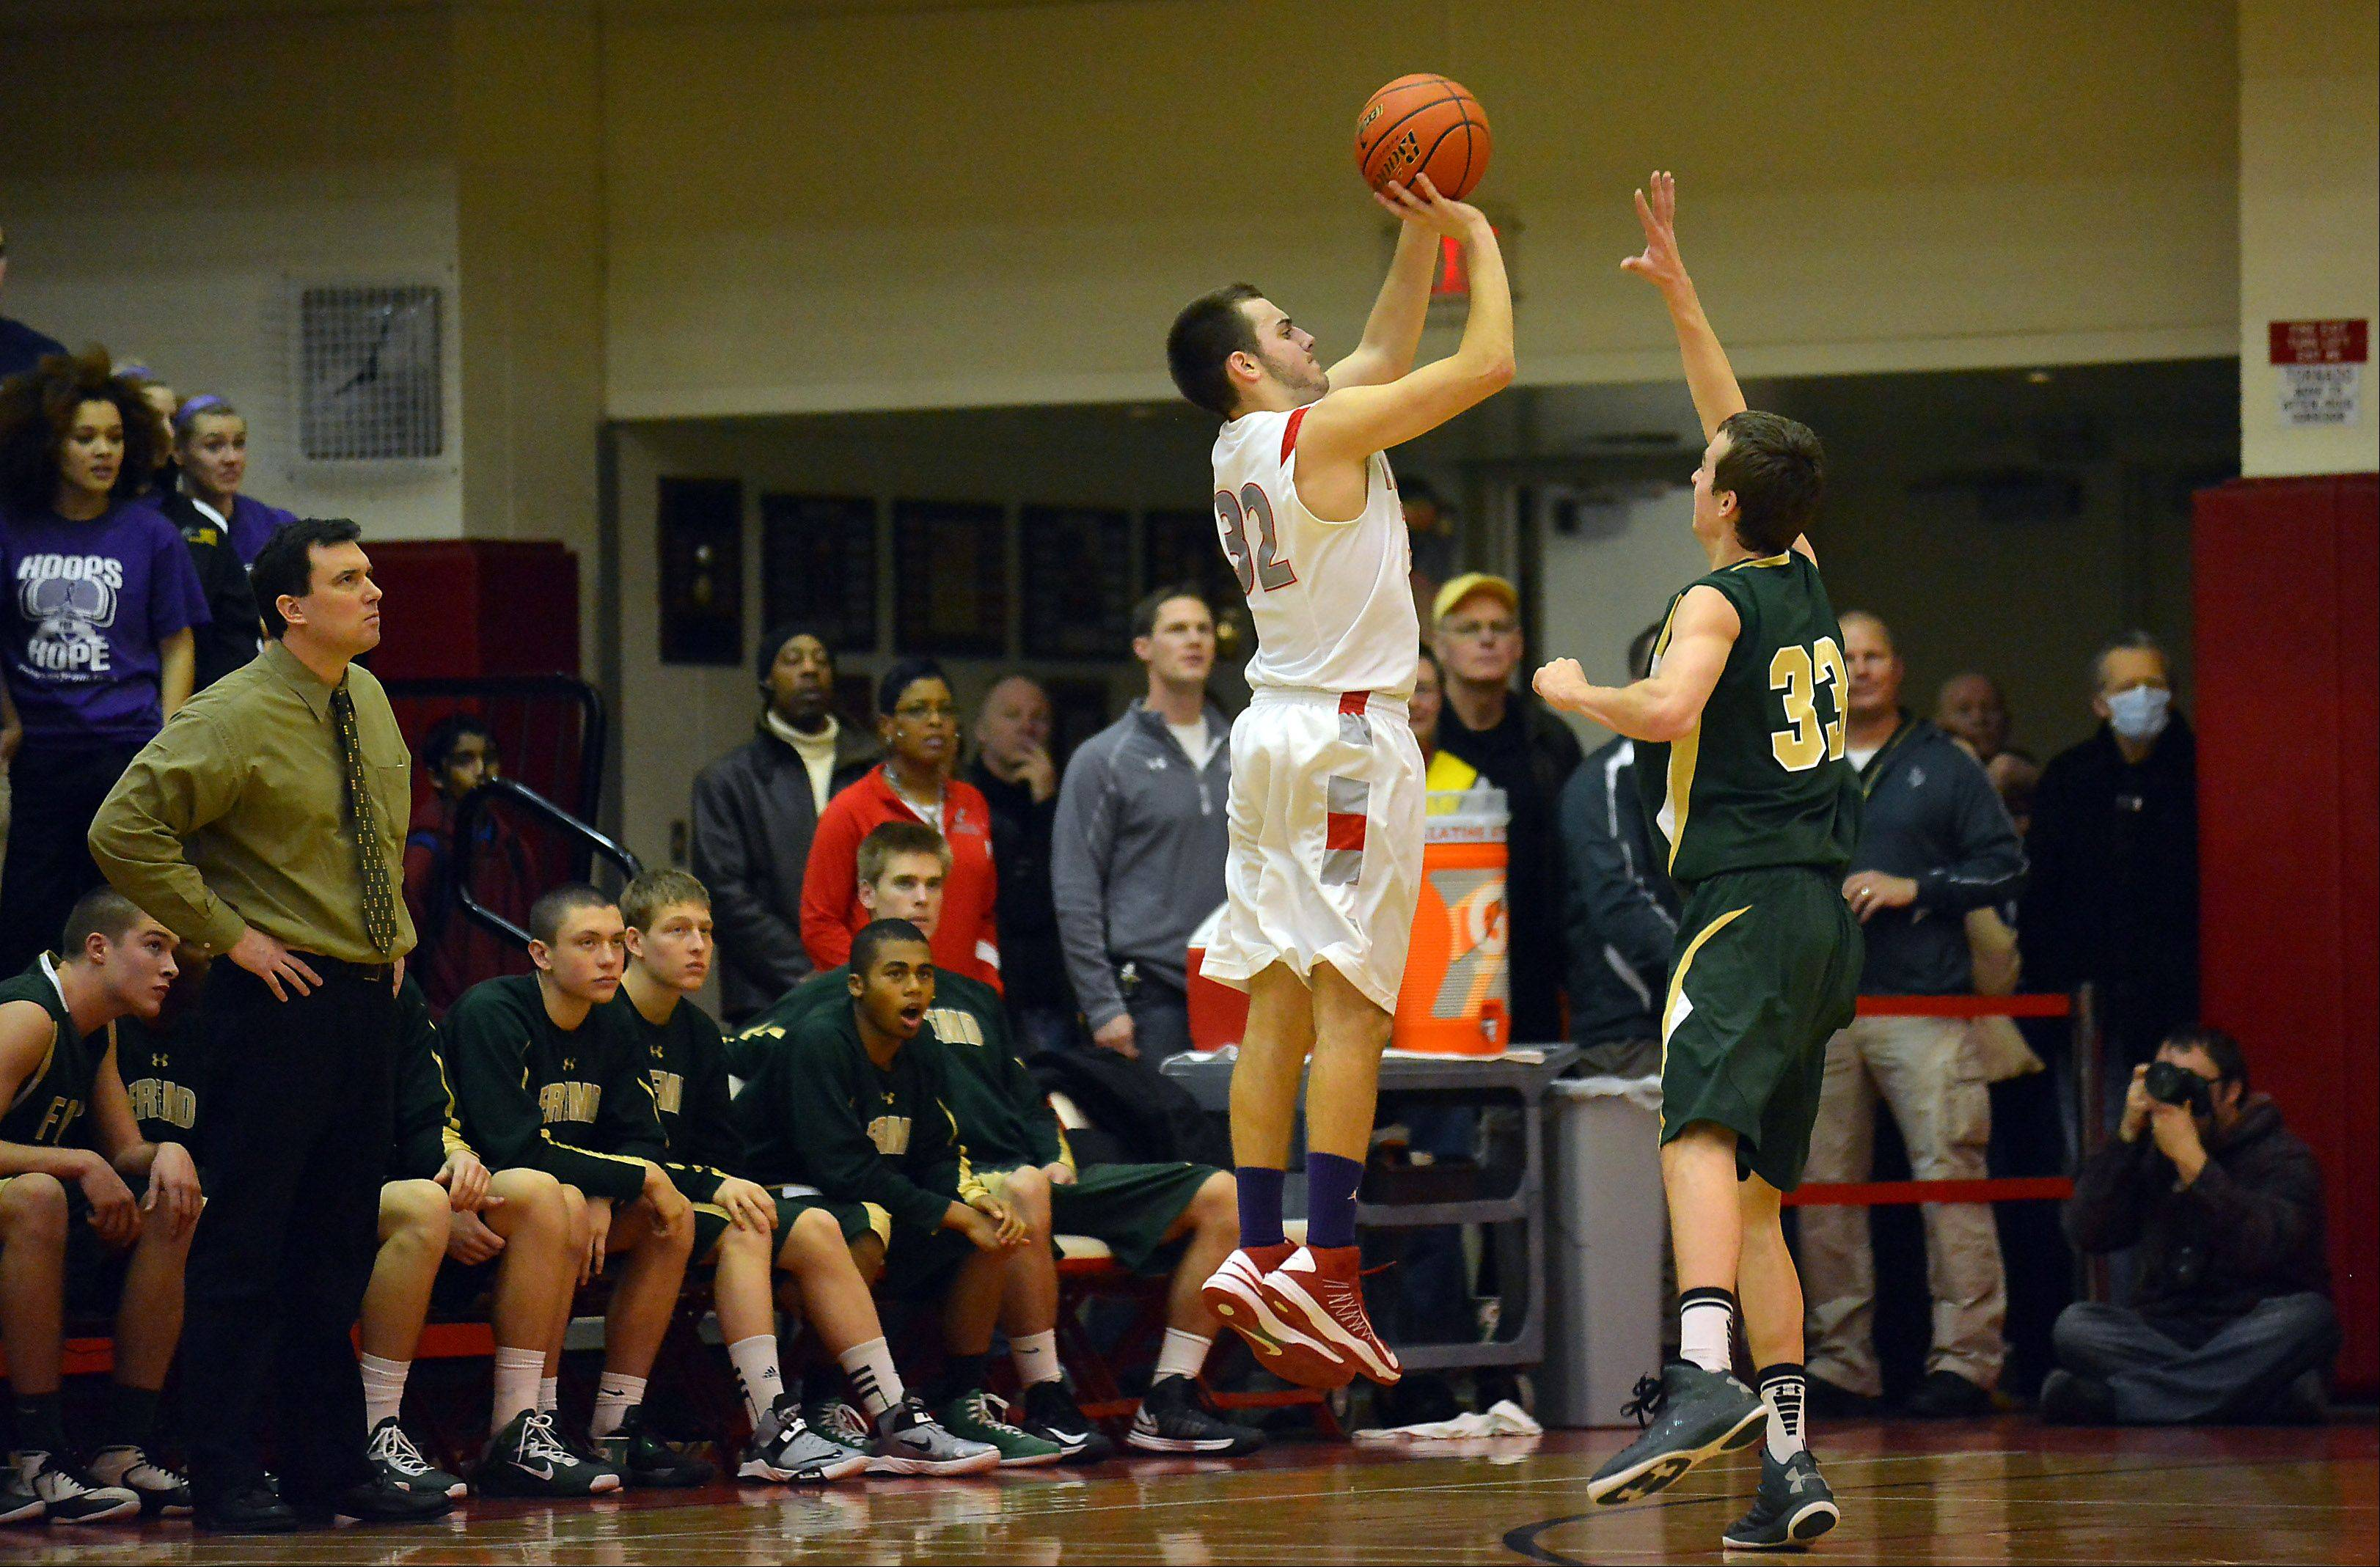 Palatine�s Greg Grana shoots over Fremd�s Sean Benka as he attempts to block the shot last Friday at Palatine. Both teams remain in the MSL West title hunt with two games left.